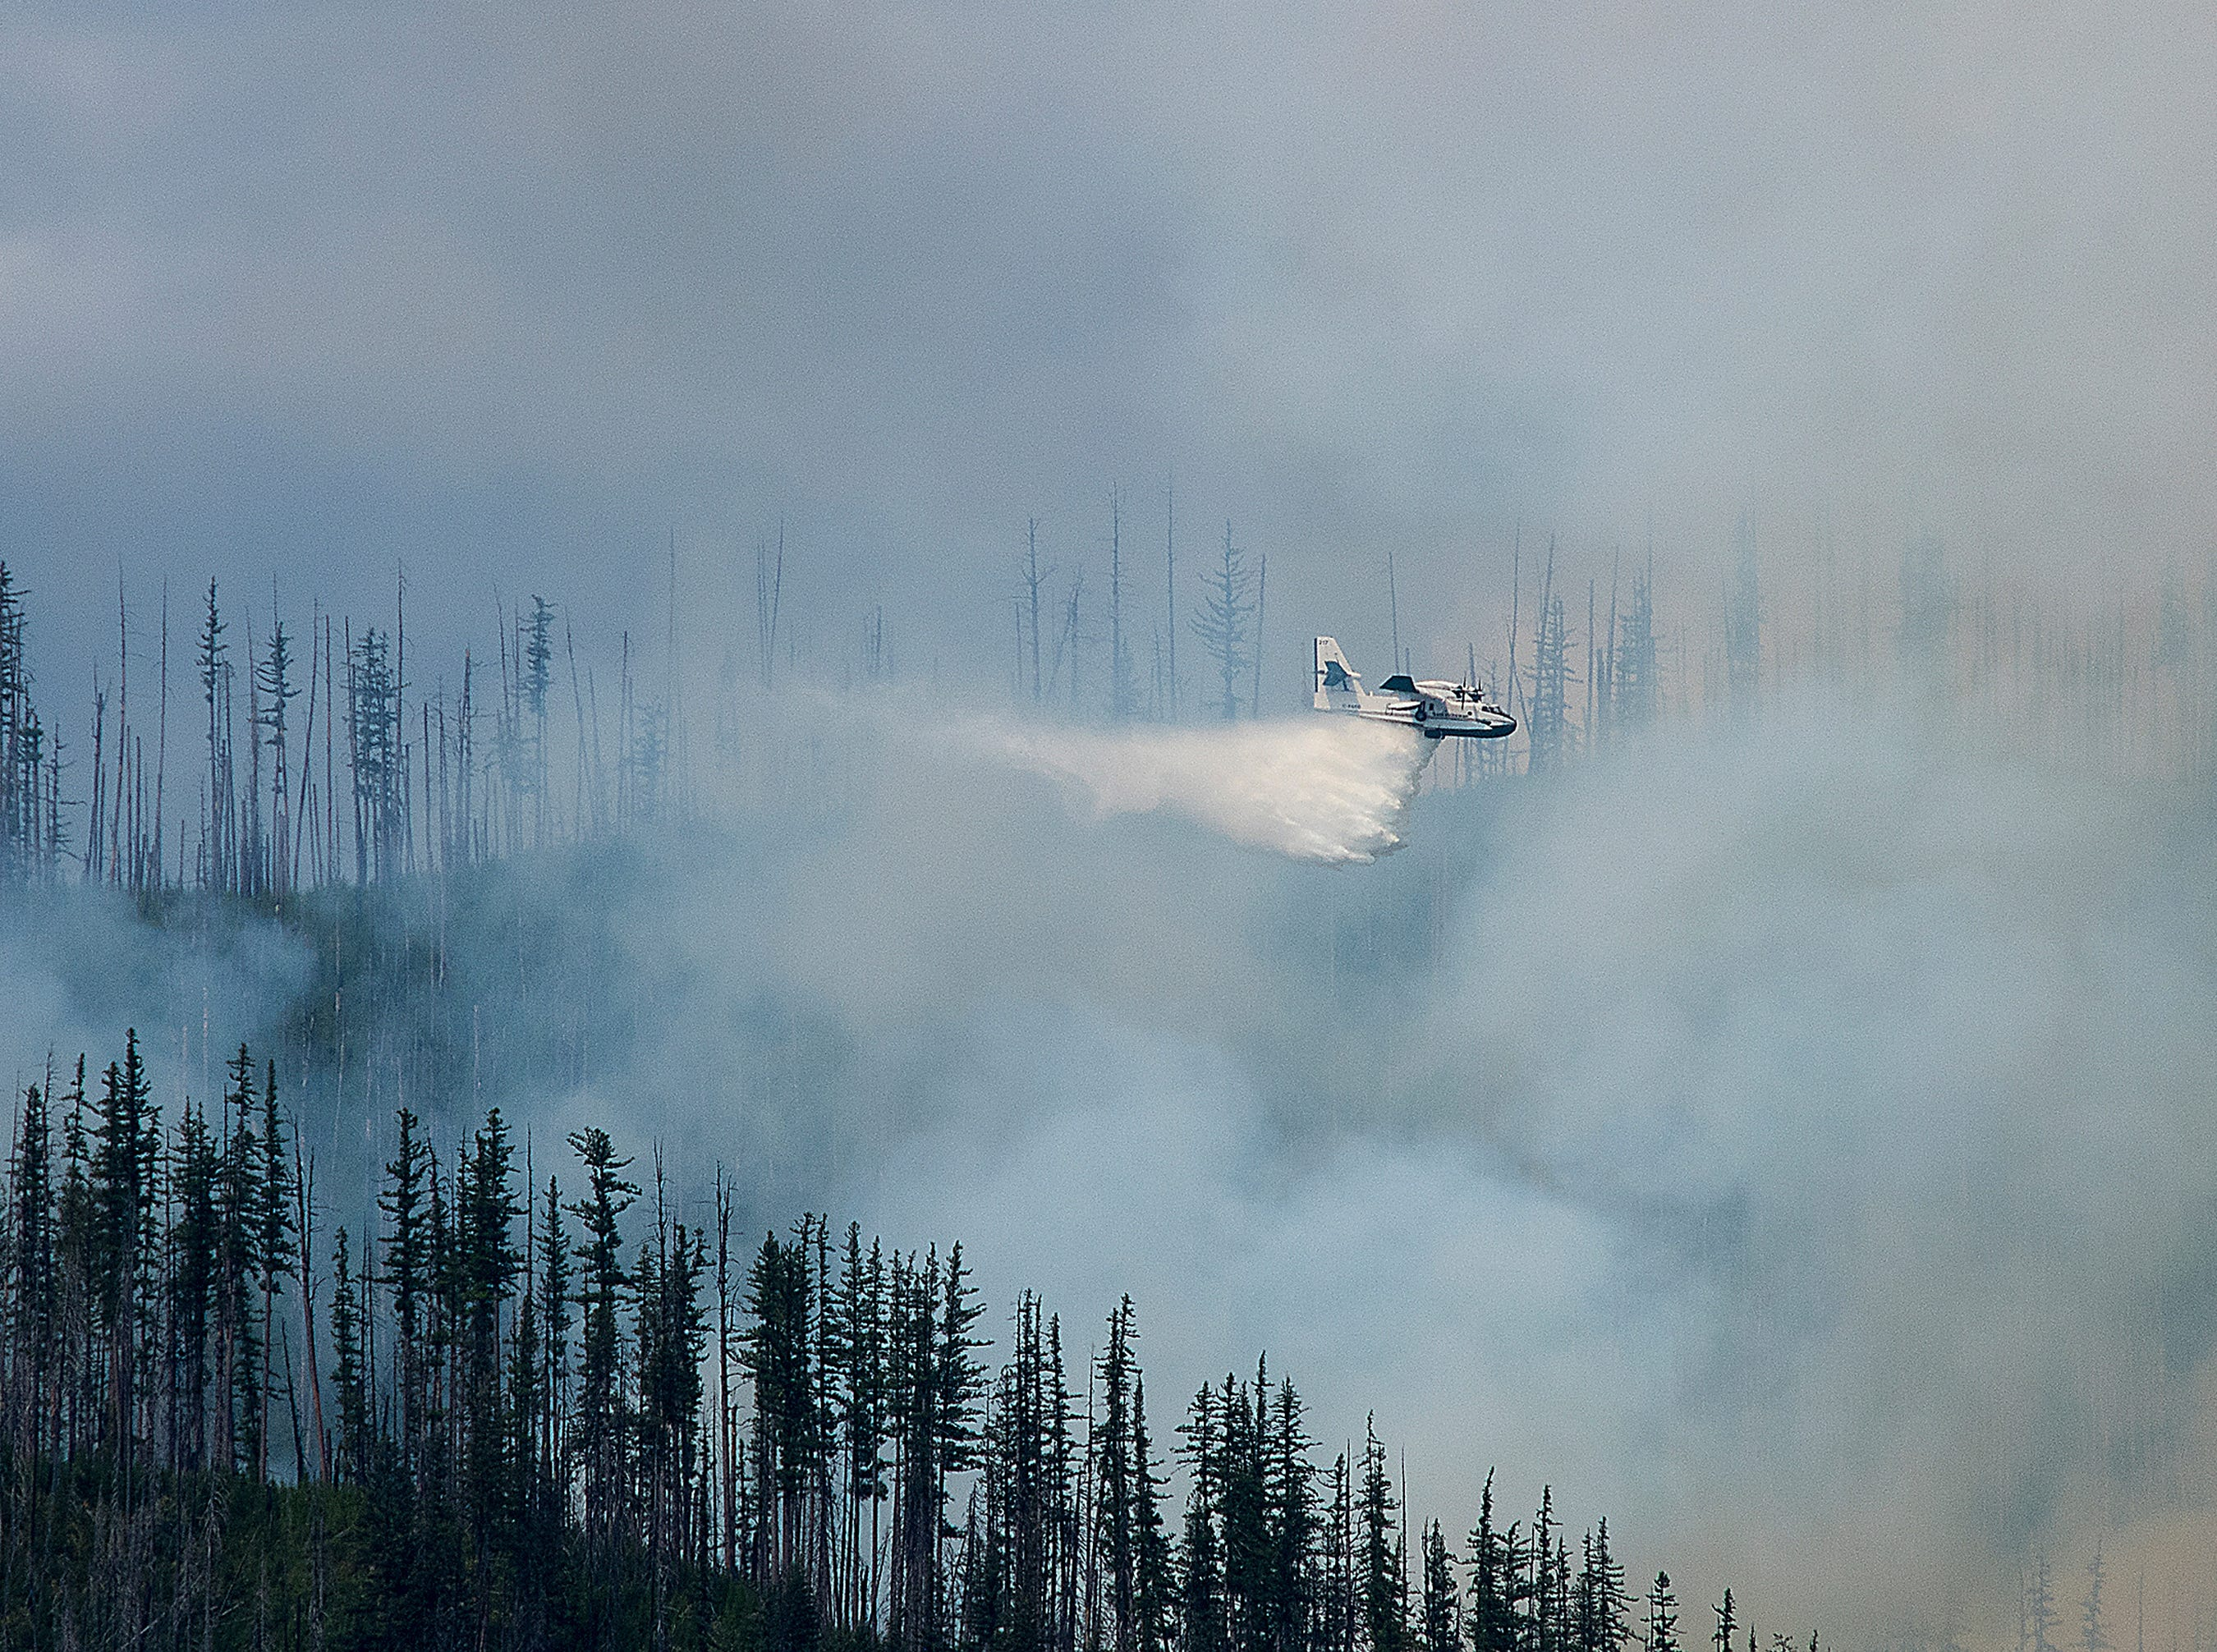 In this photo taken Sunday, Aug. 12, 2018, an air tanker drops water over a wildfire burning in Glacier National Park, Mont. The fire was started by lightning on Saturday night and forced the evacuation of the Lake McDonald Lodge and closed part of the scenic Going-to-the-Sun Road in the park.